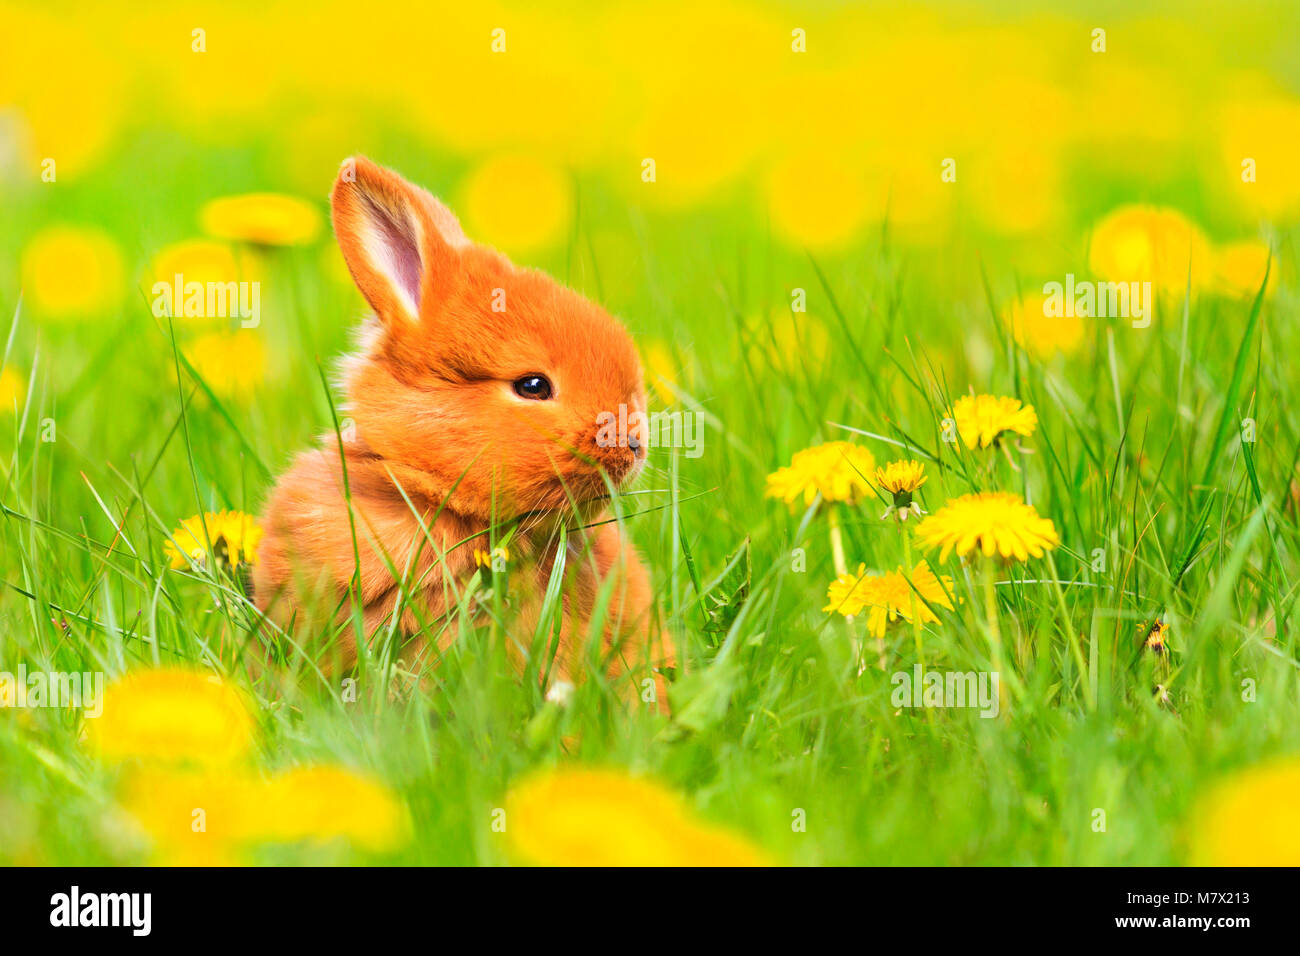 Cute Red Rabbit Sits Among The Yellow Flowers Baby Animals Pets